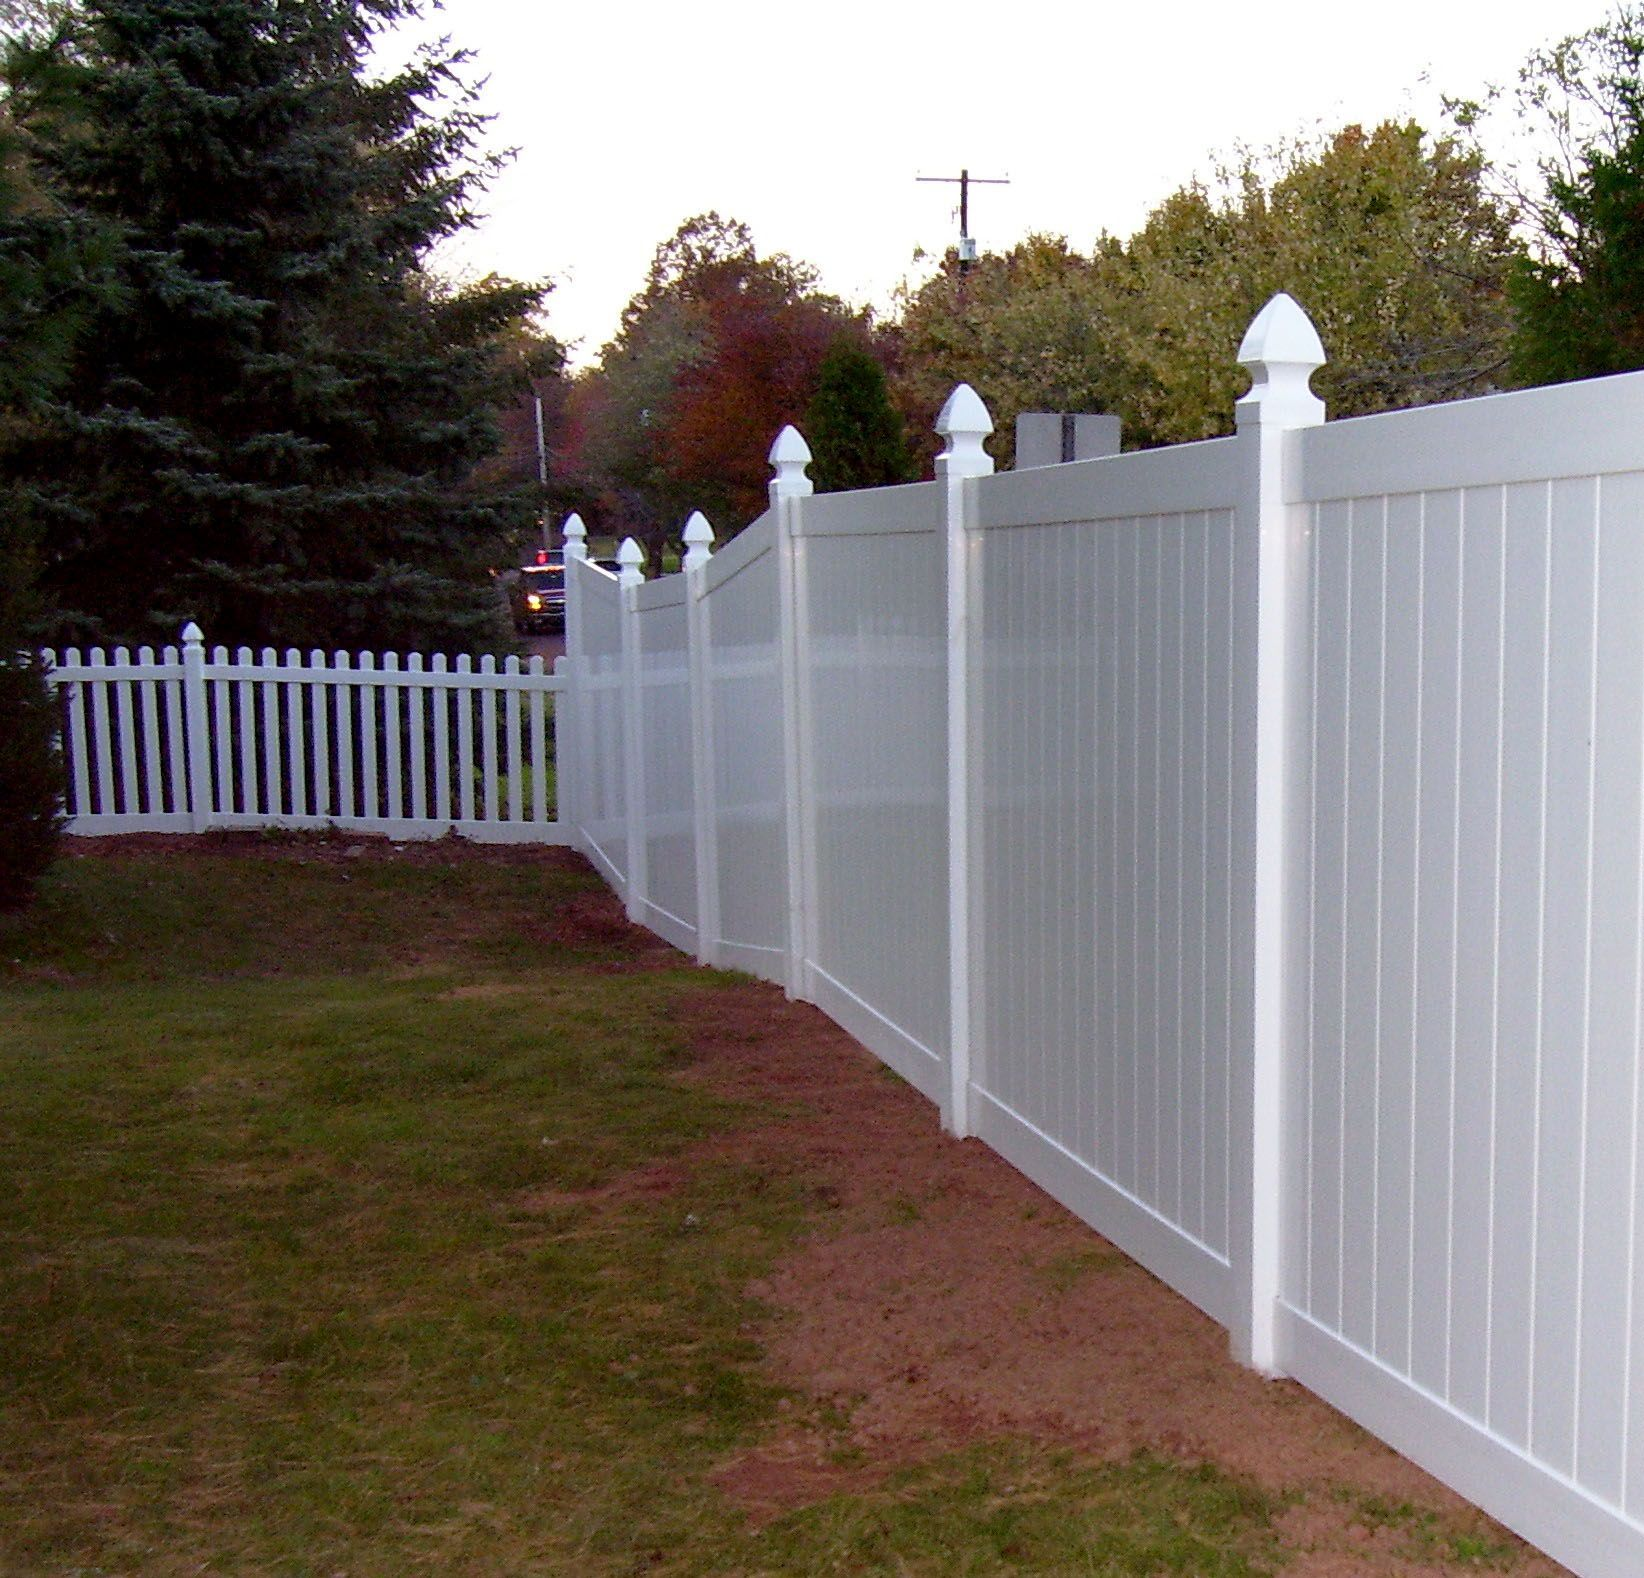 Privacy Fence Ideas I Love This Fencing Suggestion Personal Privacy Yet Neighborly Trellis And Al Vinyl Picket Fence Vinyl Fence Panels Picket Fence Panels